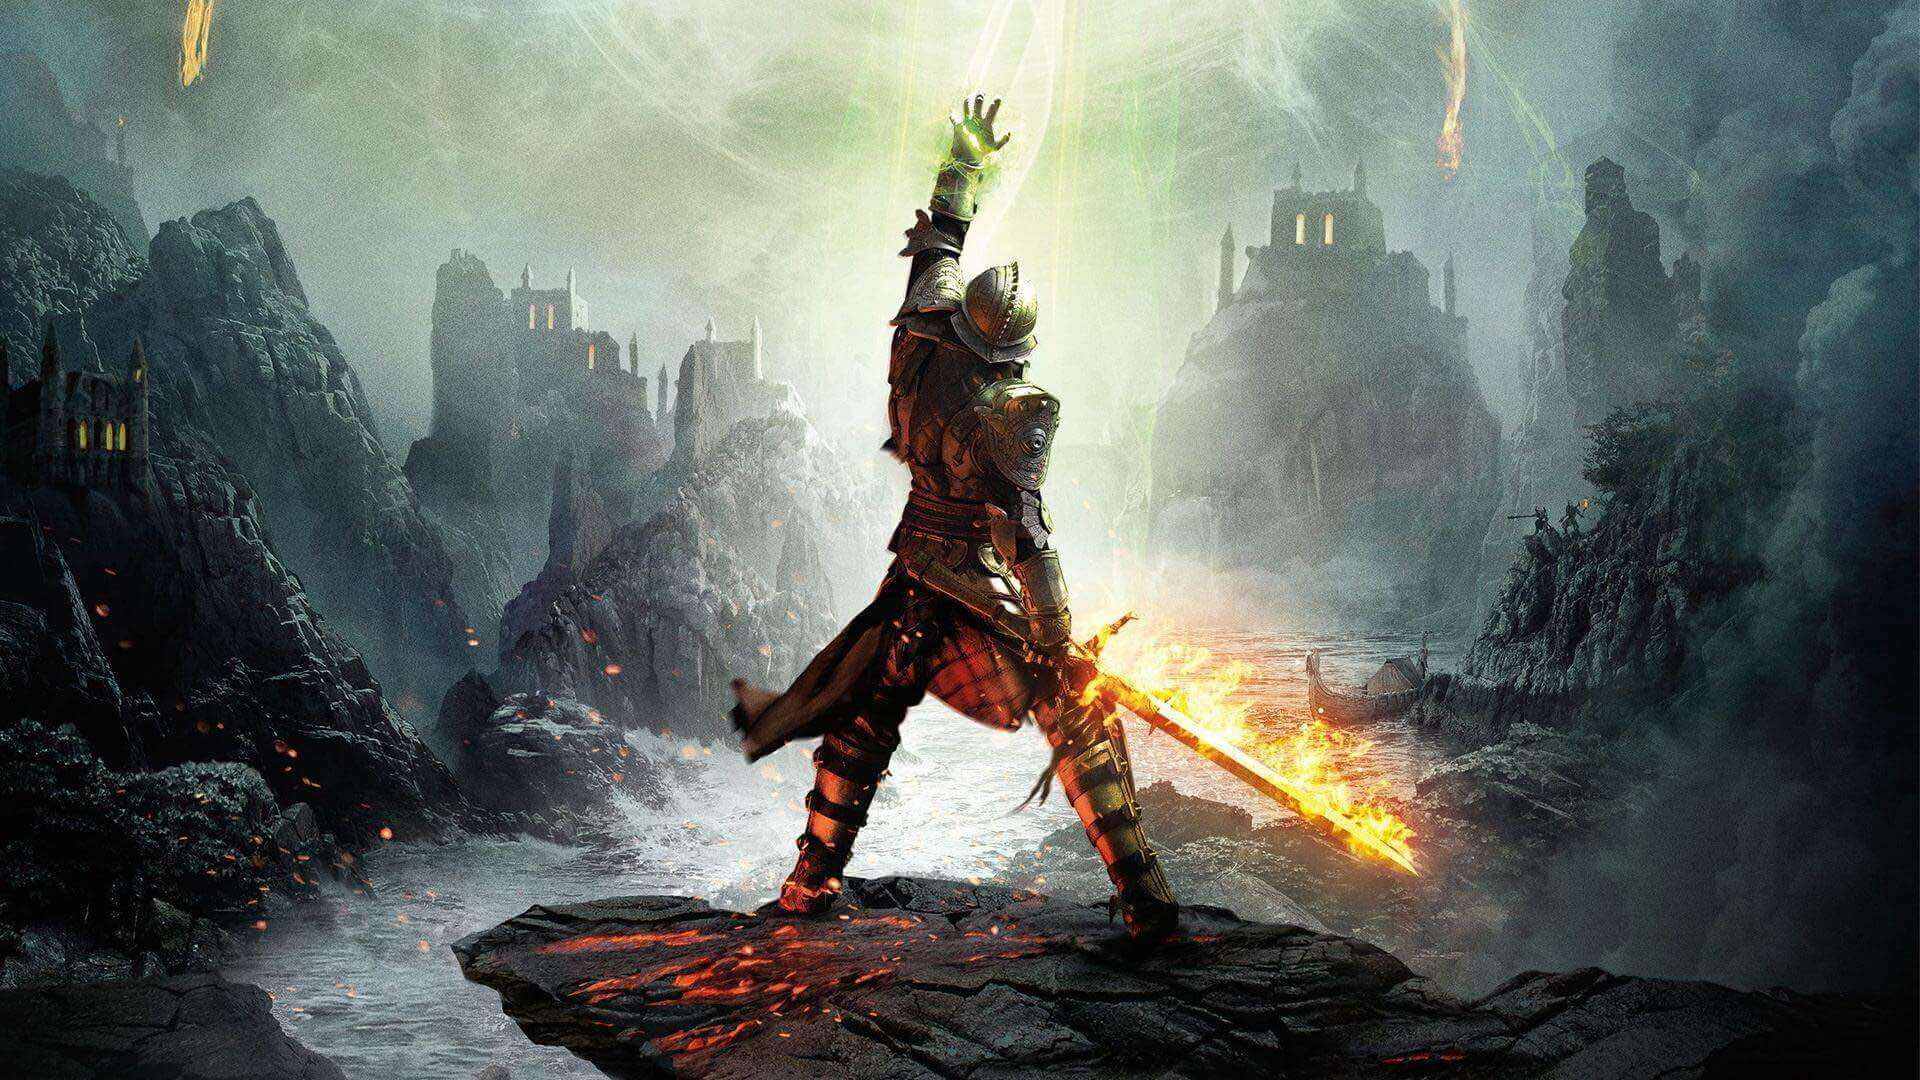 BioWare's Dragon Age 4 Will Be At The Game Awards 2020